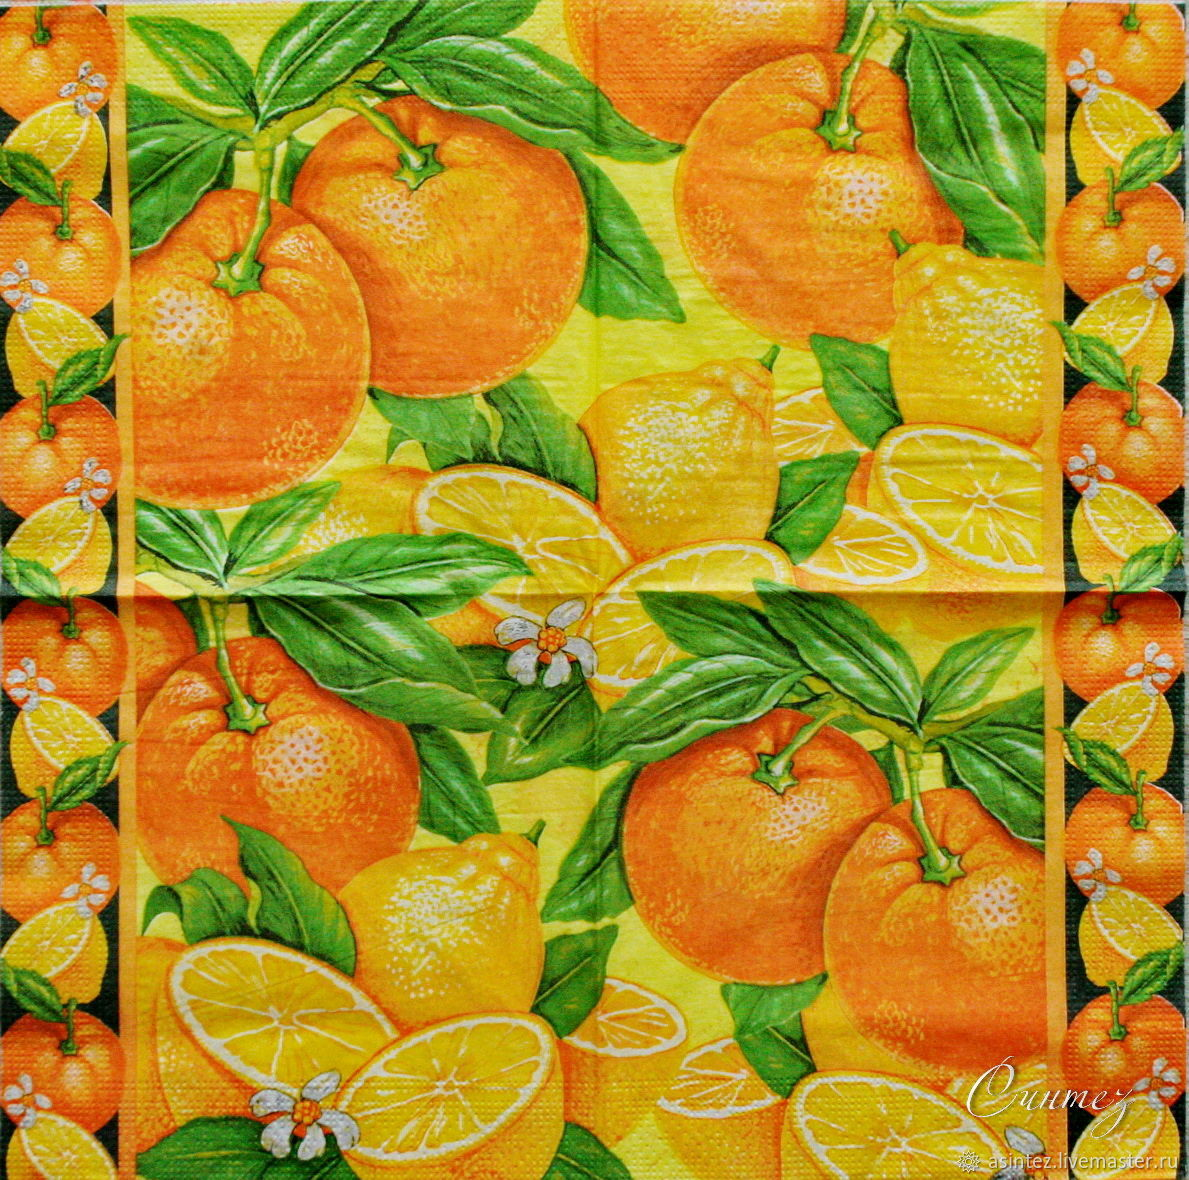 14pcs napkins for decoupage citrus Paradise print, Napkins for decoupage, Moscow,  Фото №1